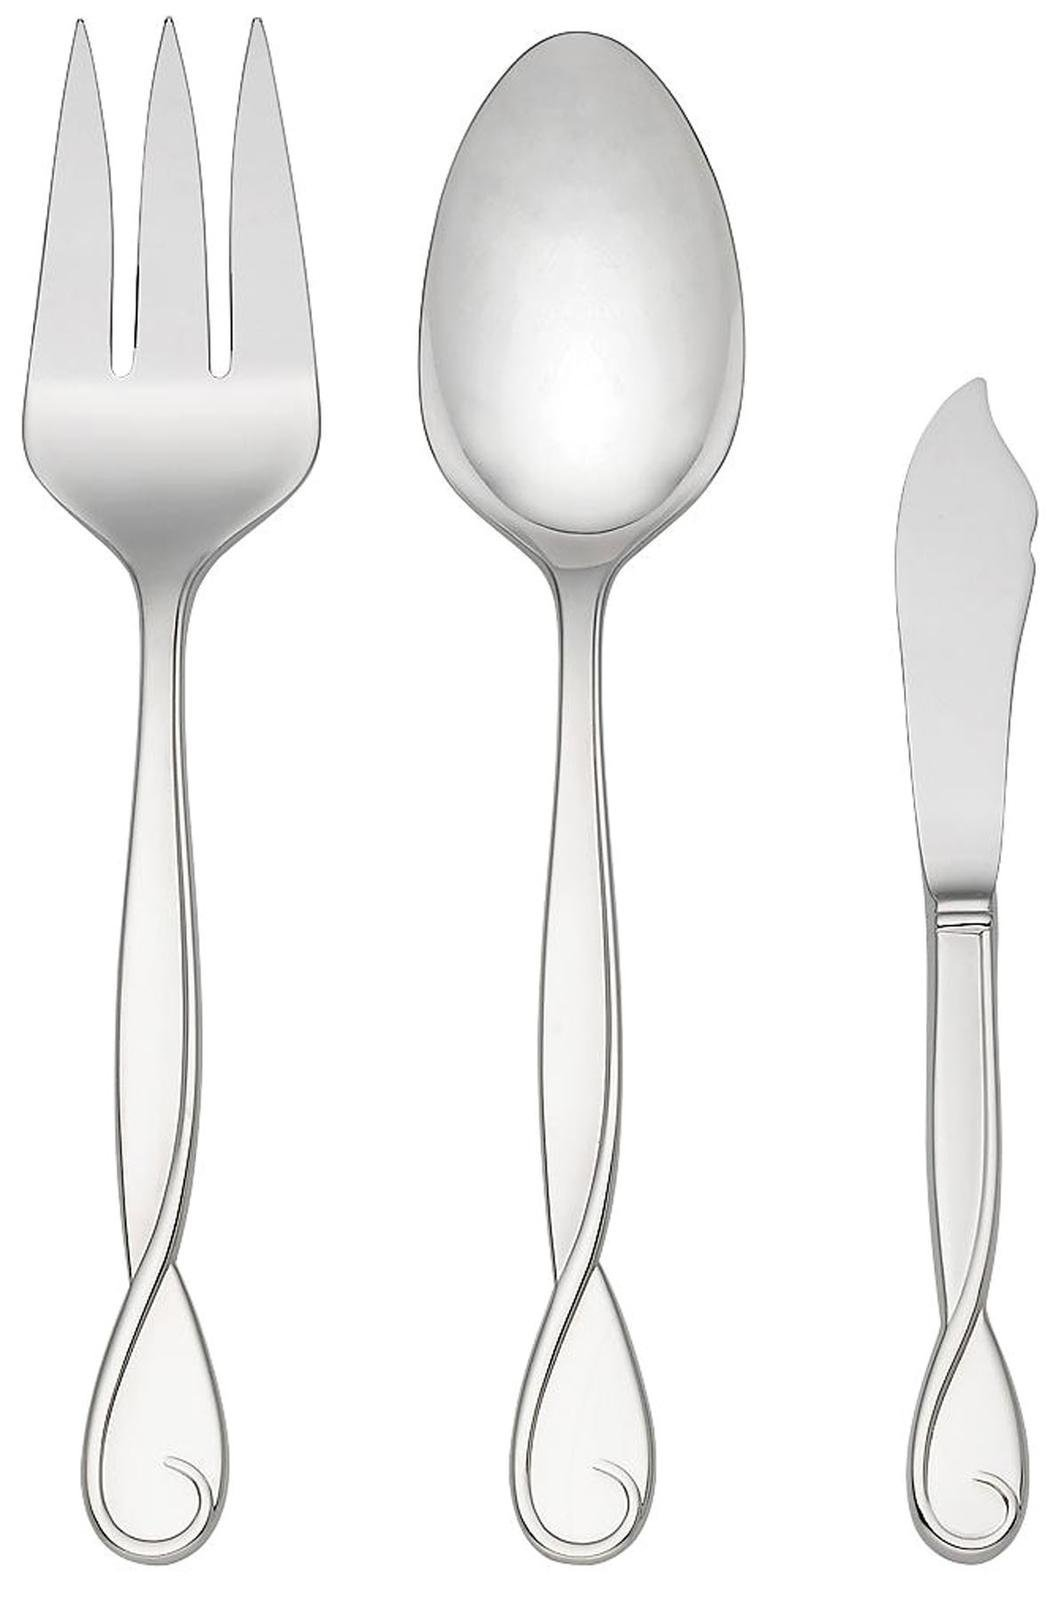 Kate Spade New York Women's Belle Boulevard Serving 3 Piece Set Silver Flatware